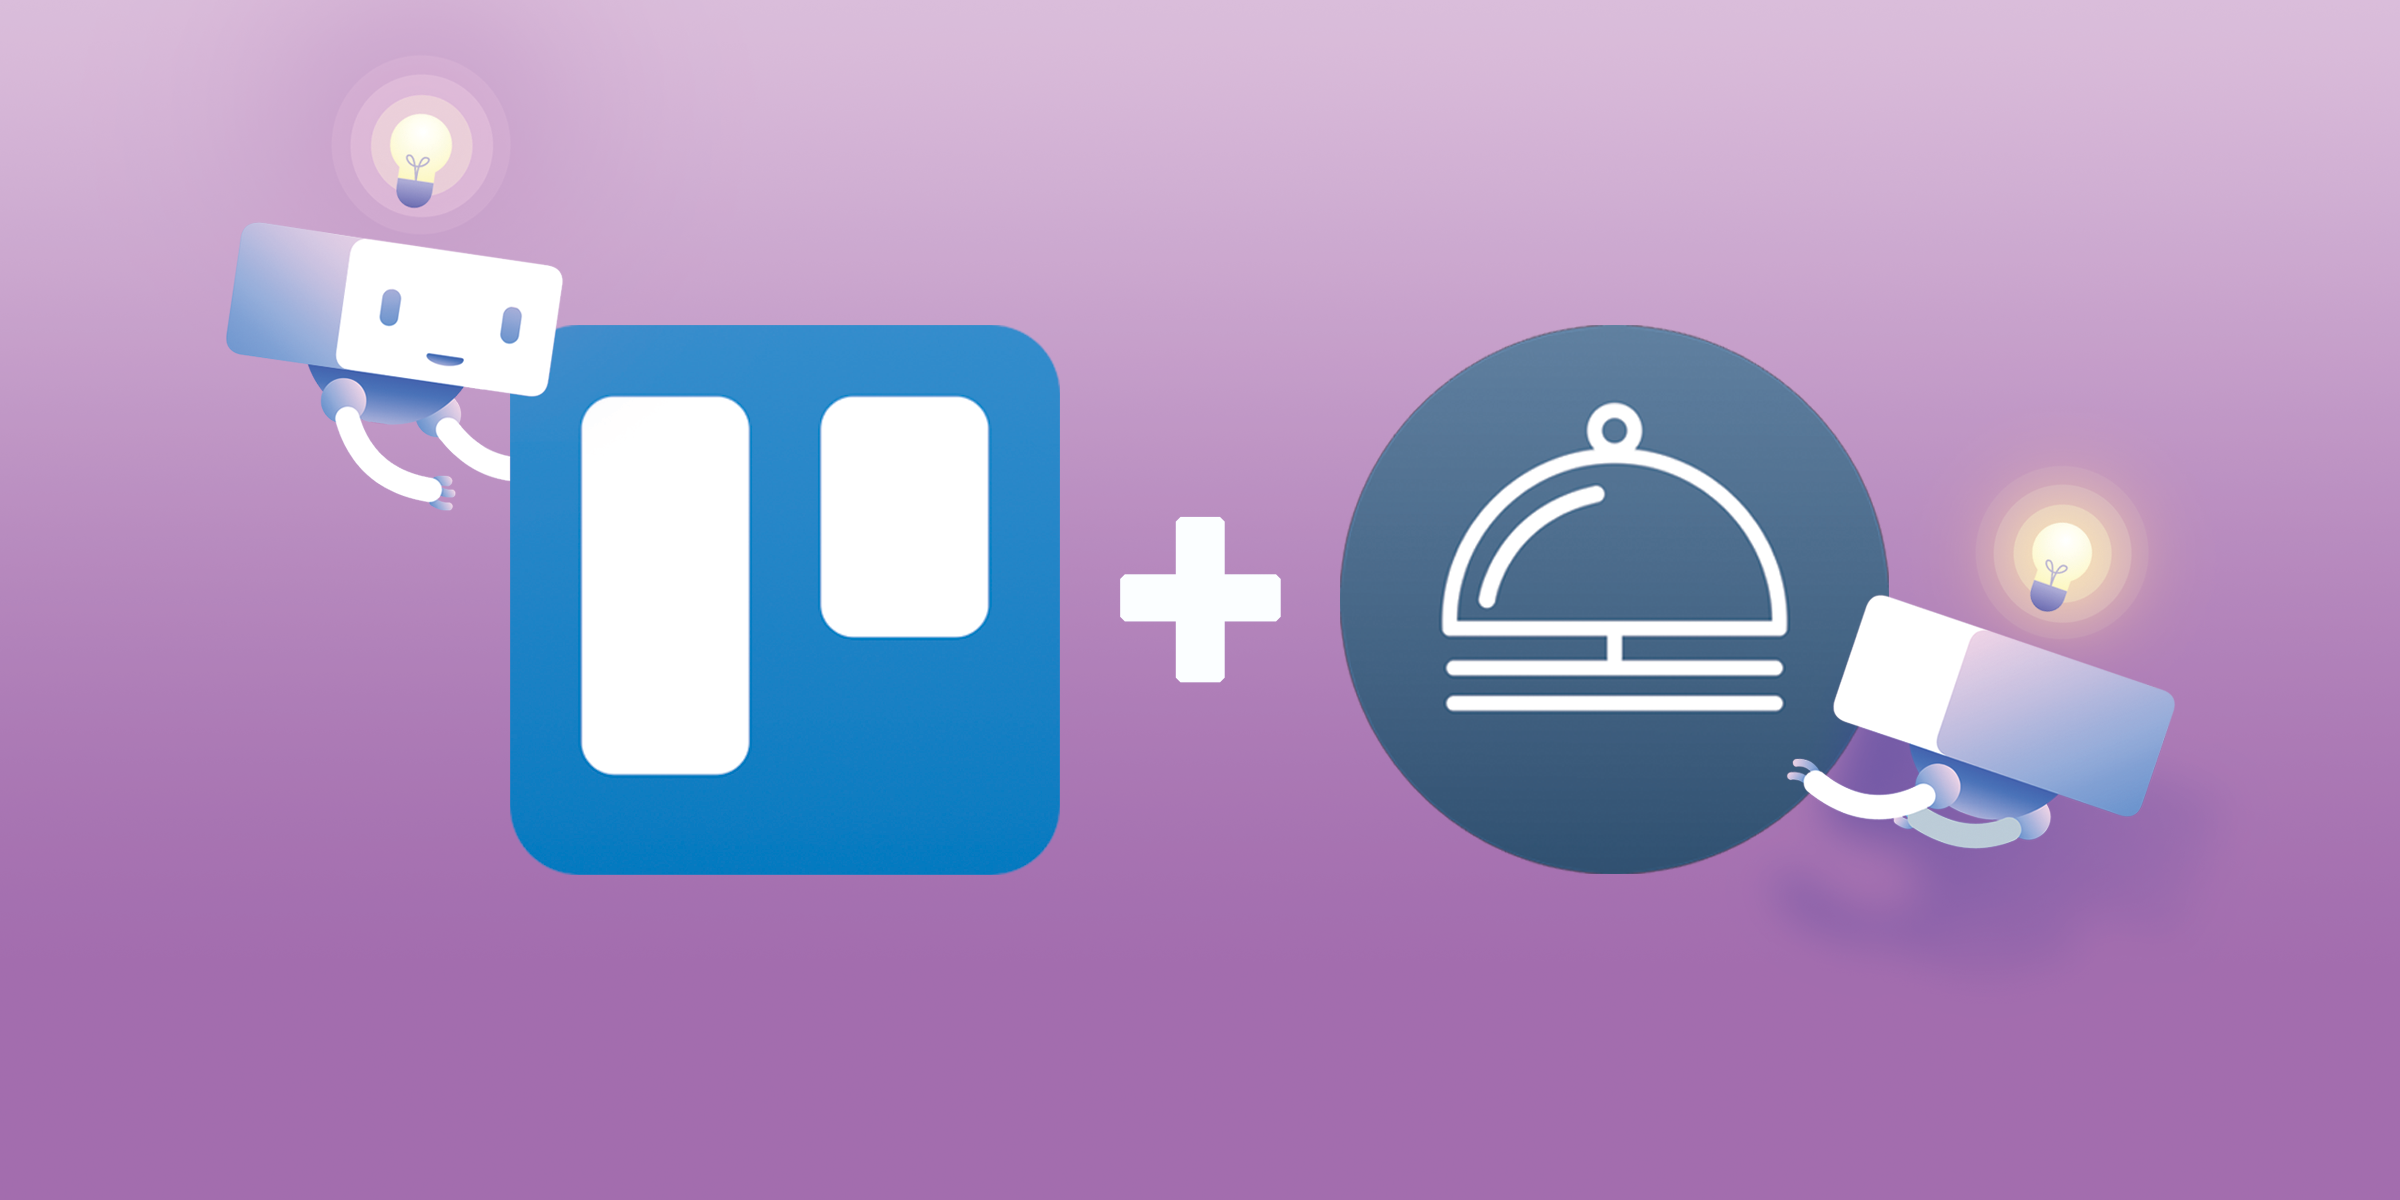 https://blog.trello.com/trello-acquires-butler